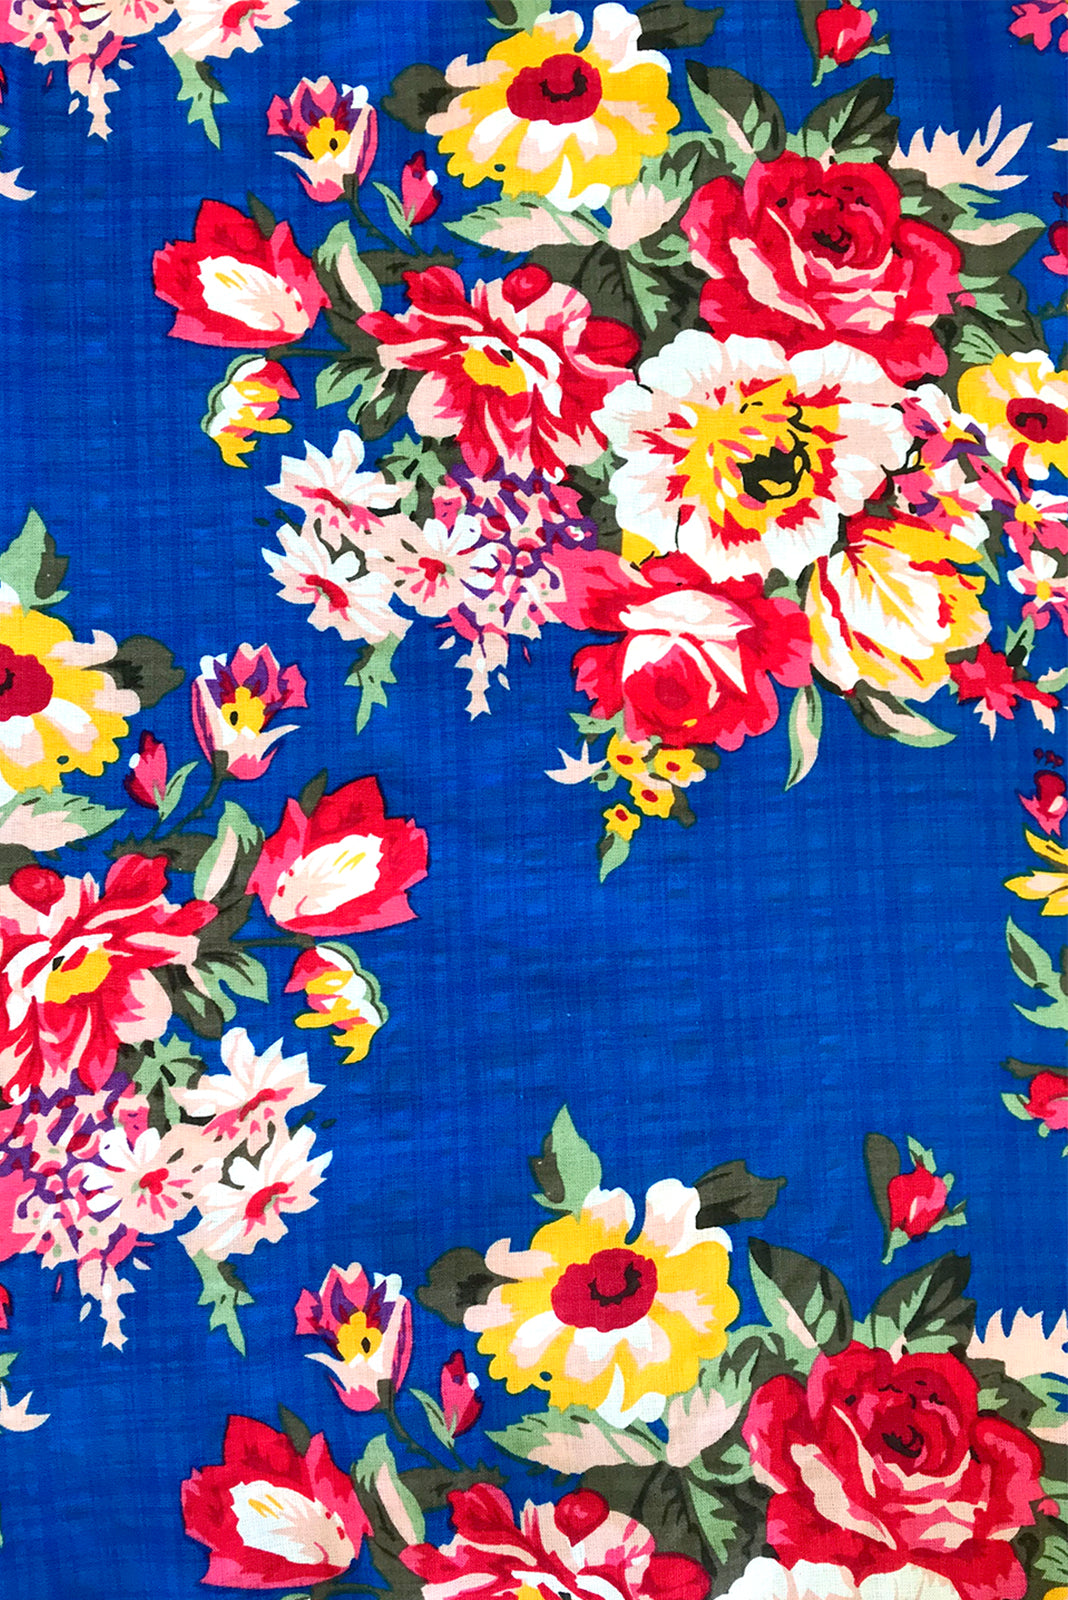 Fabric swatch of Sails Culebra Blue Maxi Skirt featuring 65% cotton, 35% Rayon in bold cobalt blue base with large summer floral print.